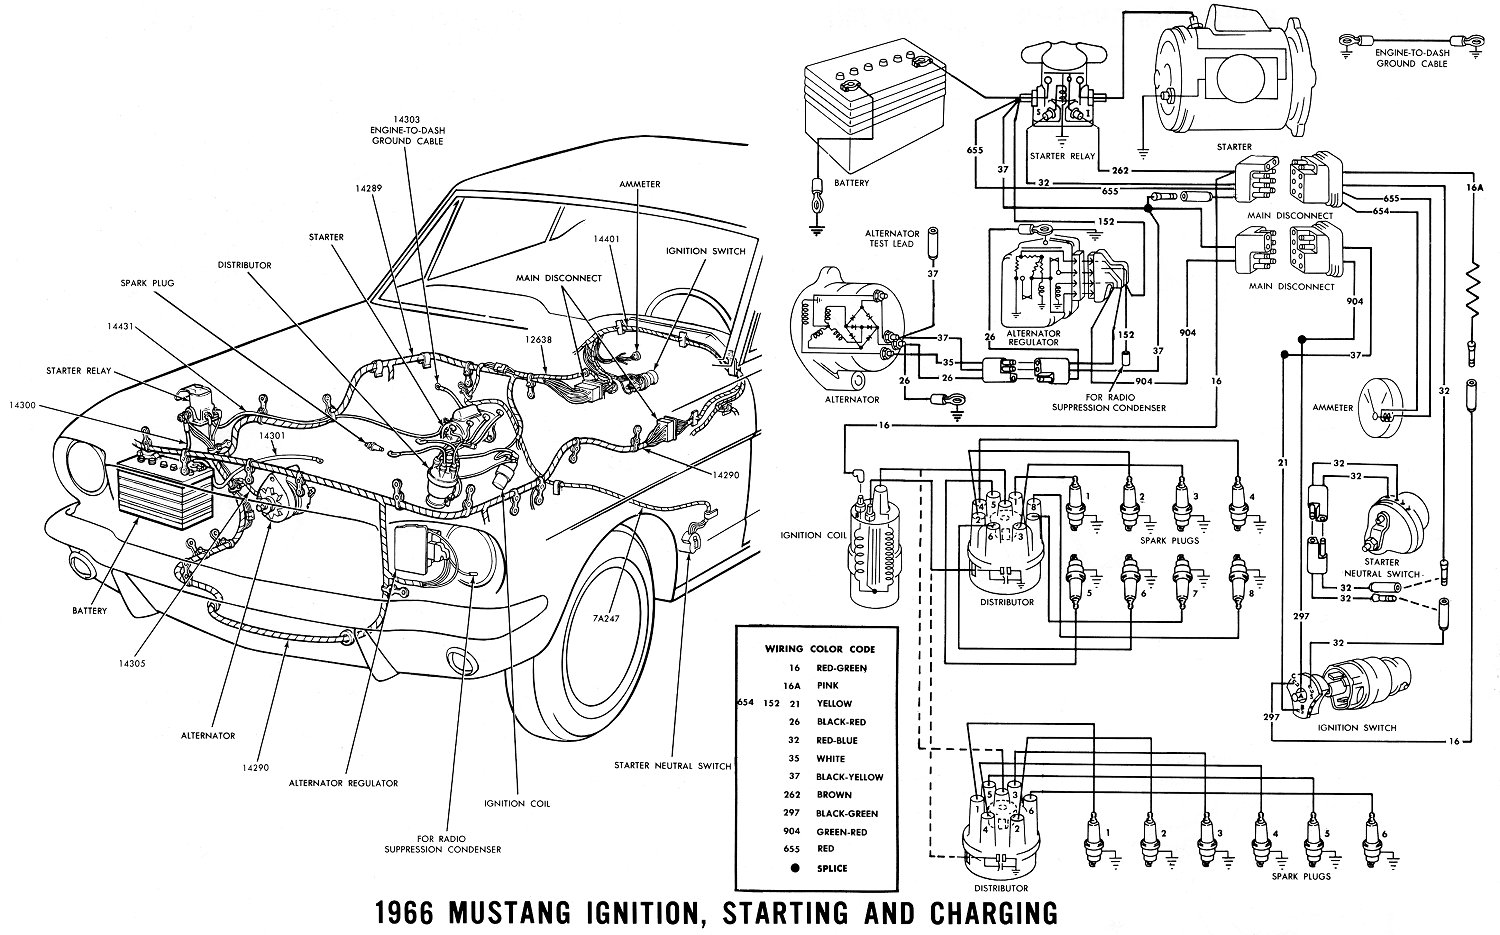 Wiring Diagrams For 1990 Cadillac Block Diagram Explanation 1968 Dash Lelu S 66 Mustang 1966 Ignition 4 5 Engine